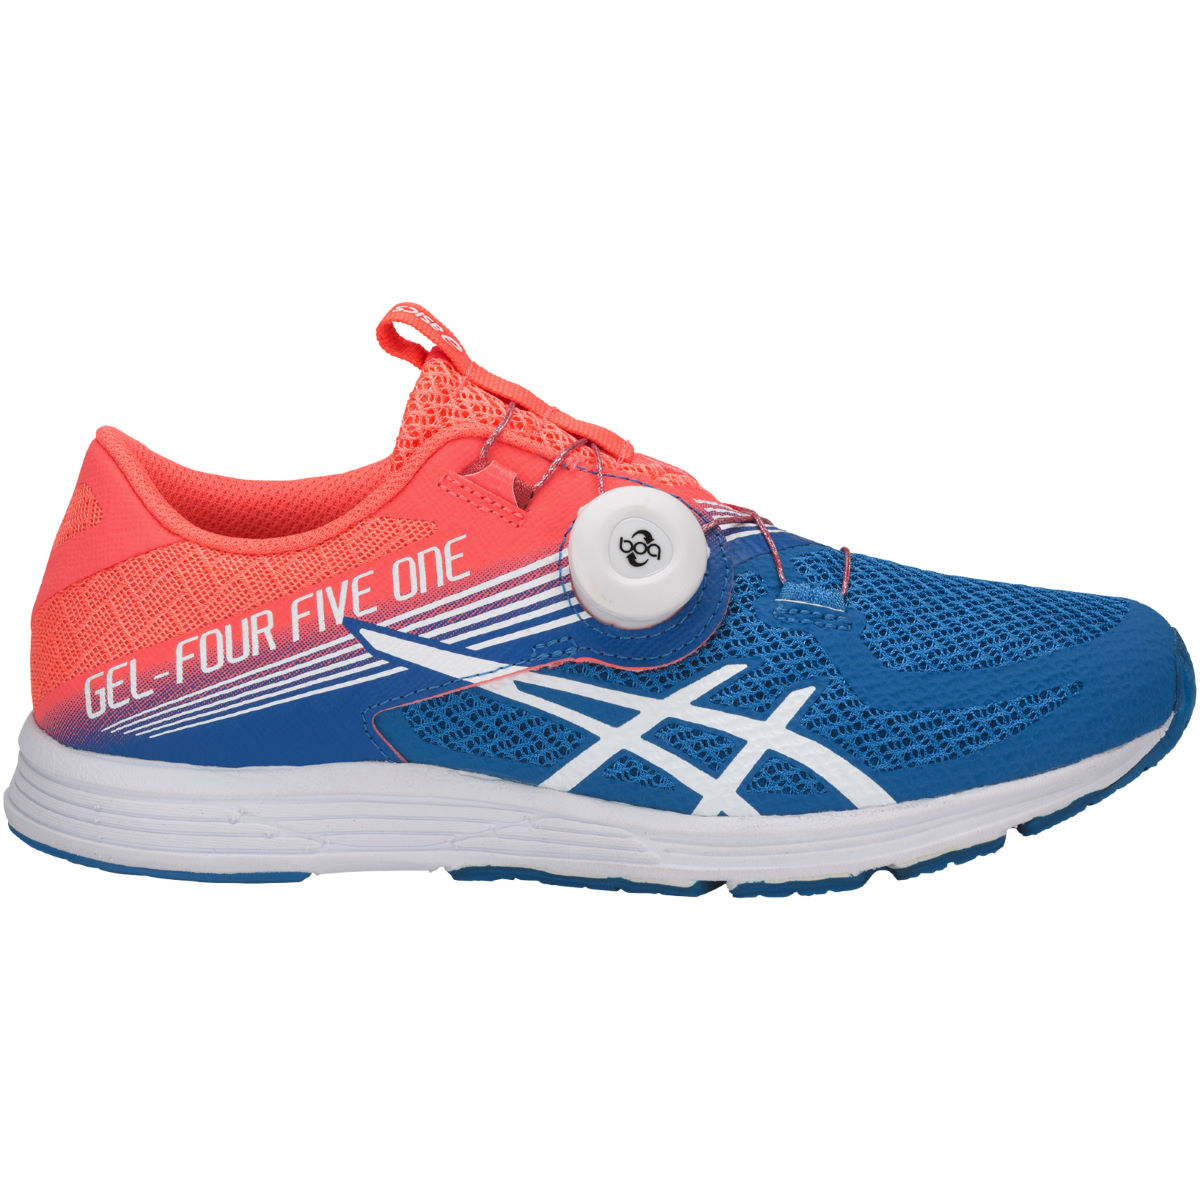 Chaussures Femme Asics Gel-451 - UK 4 FLASH CORAL/WHITE/DI